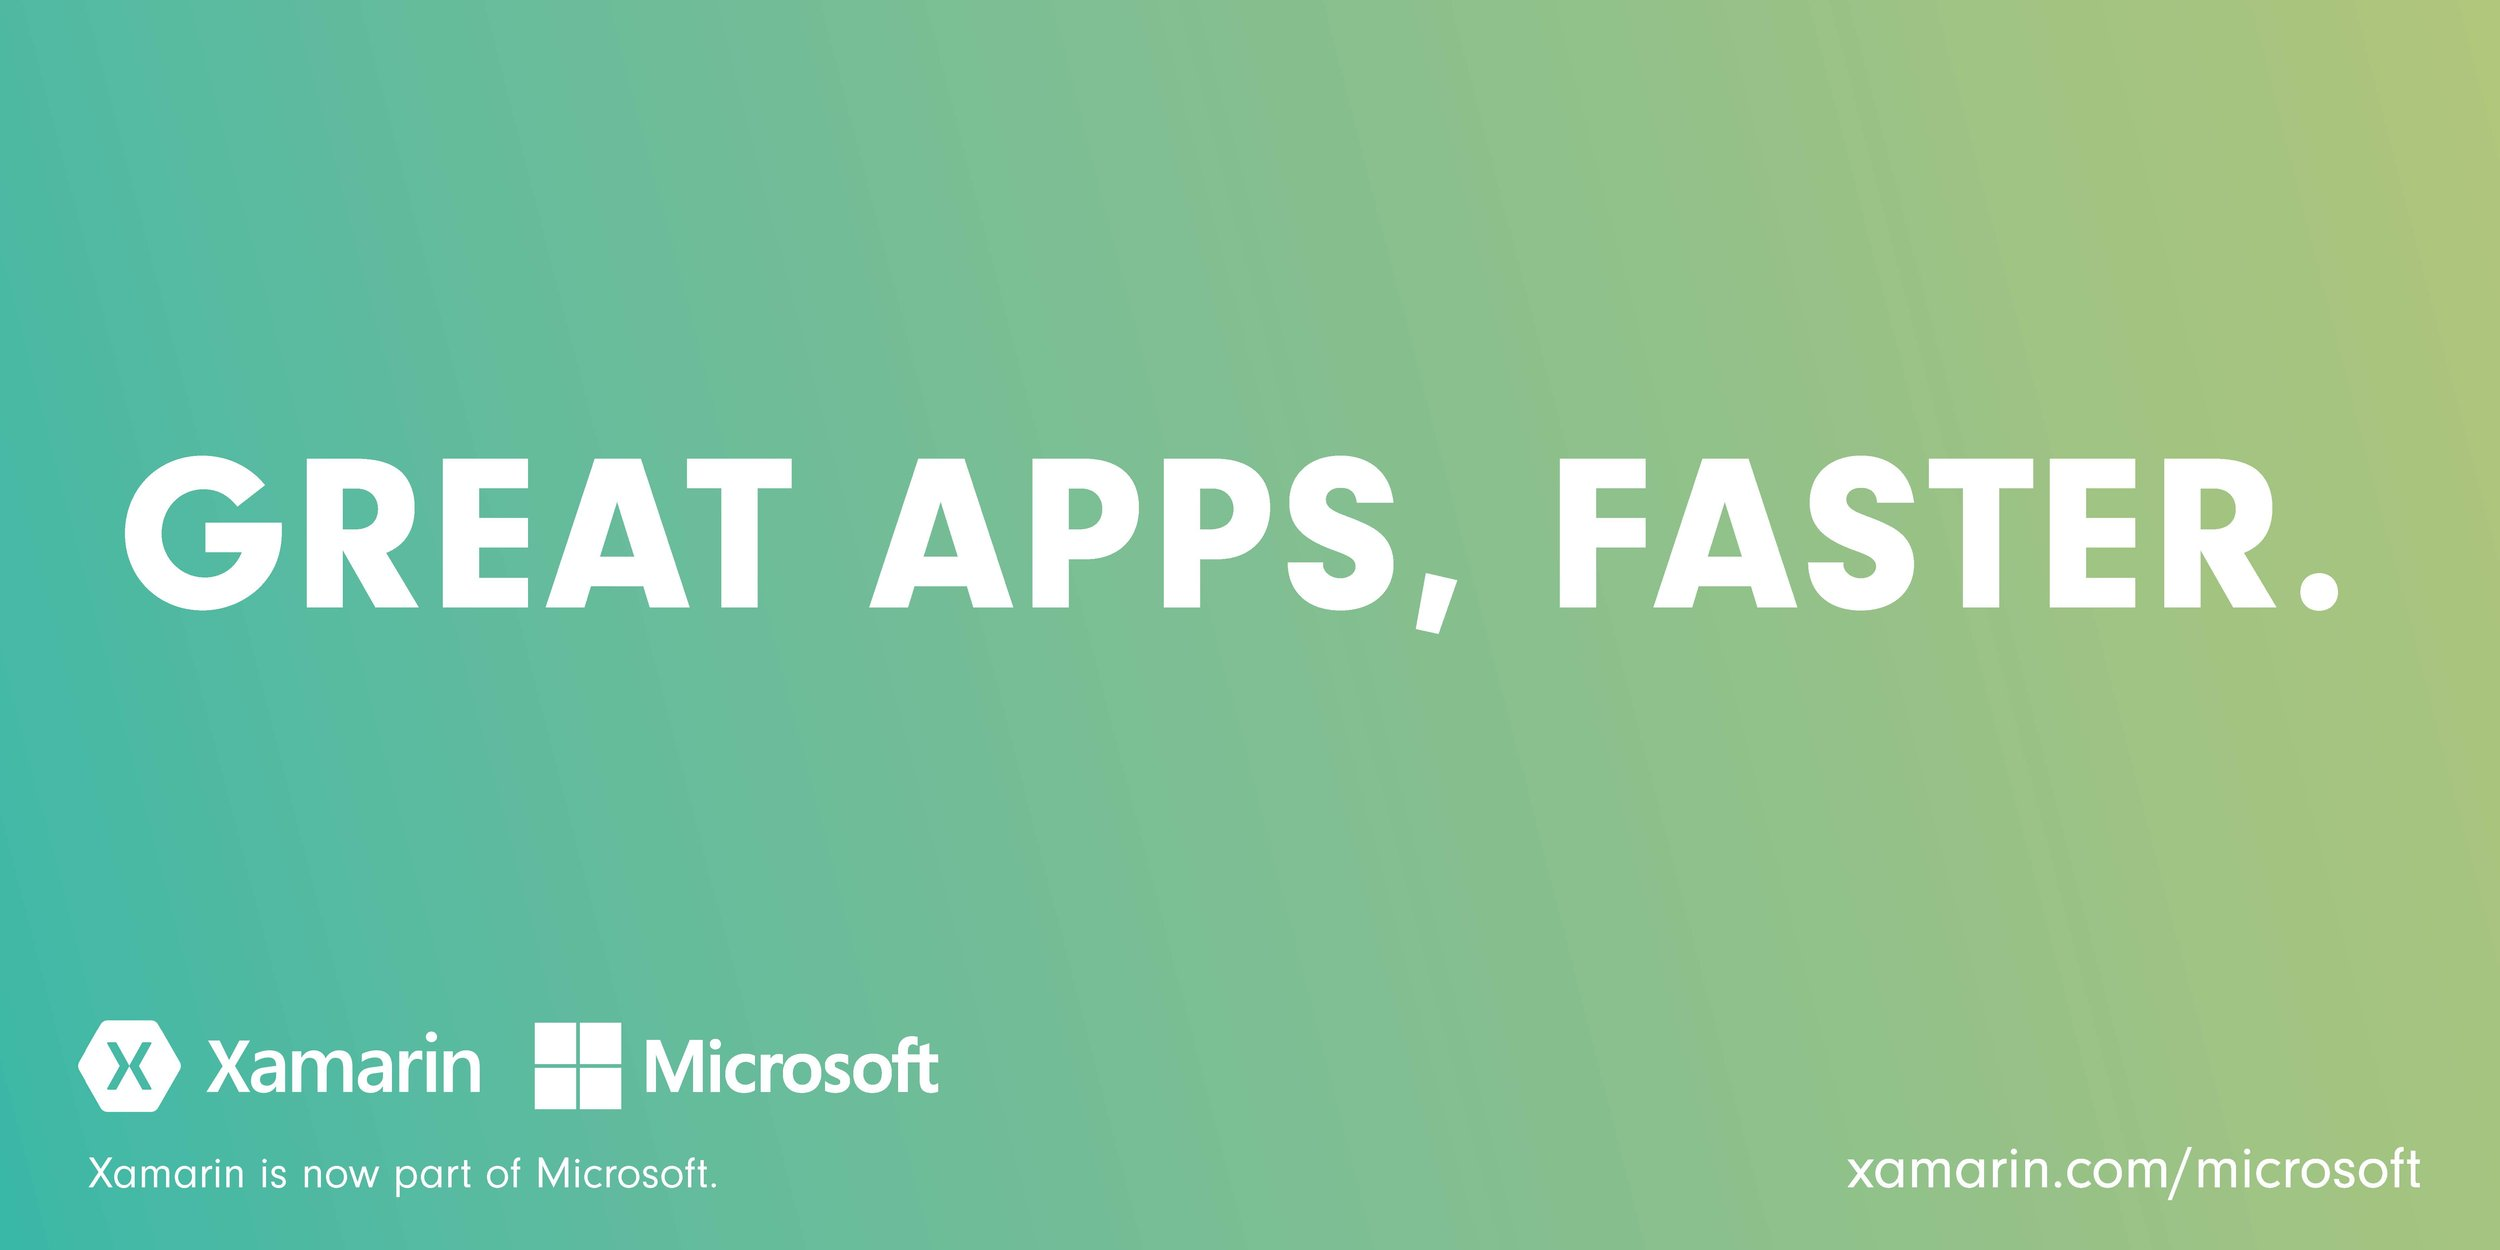 Xamarin + Microsoft Outdoor Campaign style 03_15_16_Page_7.jpg